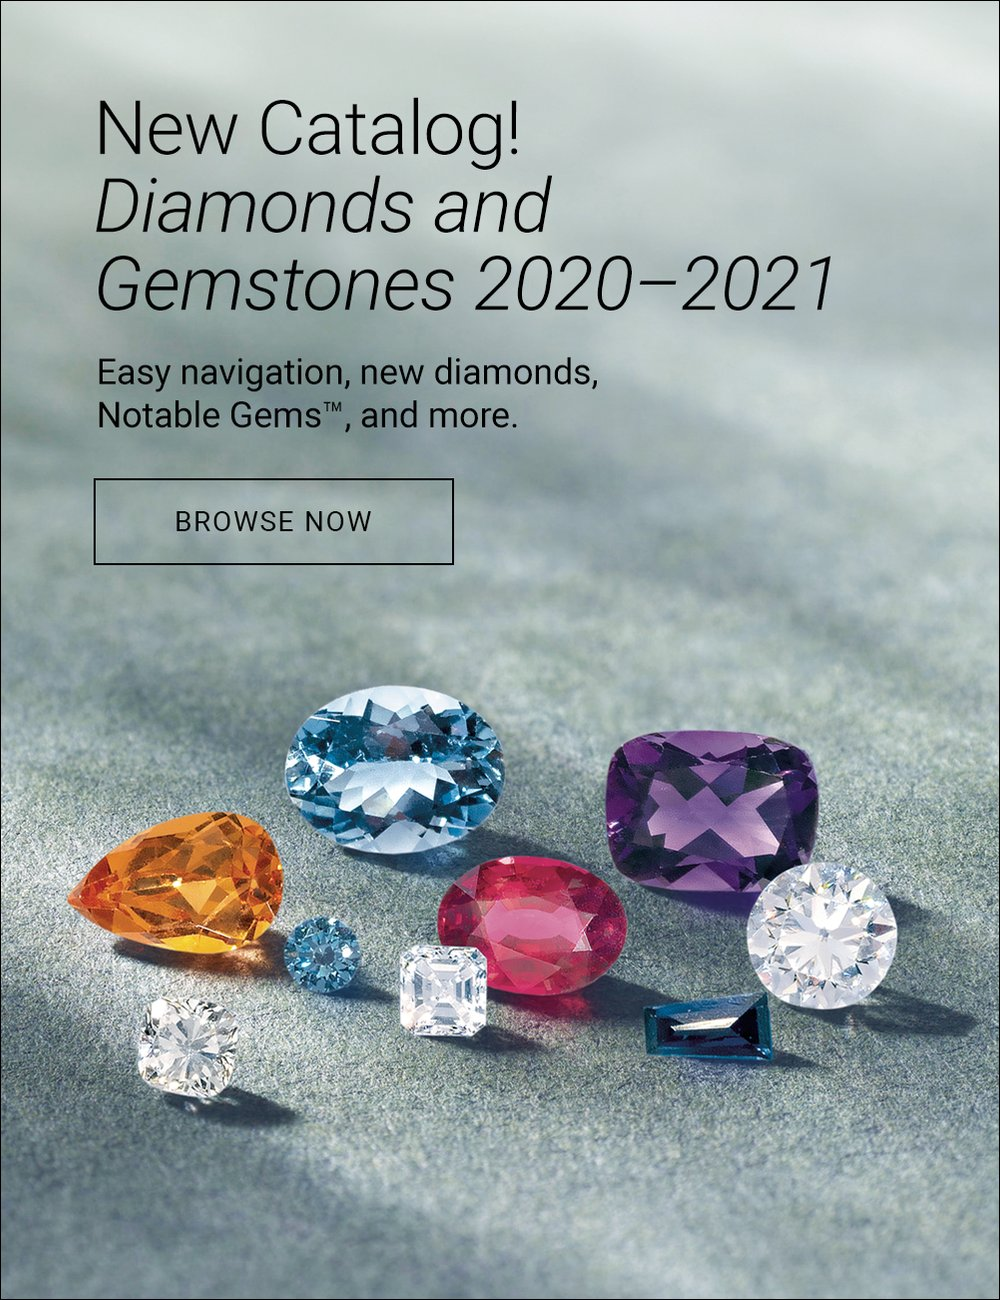 Diamond and Gemstones catalog